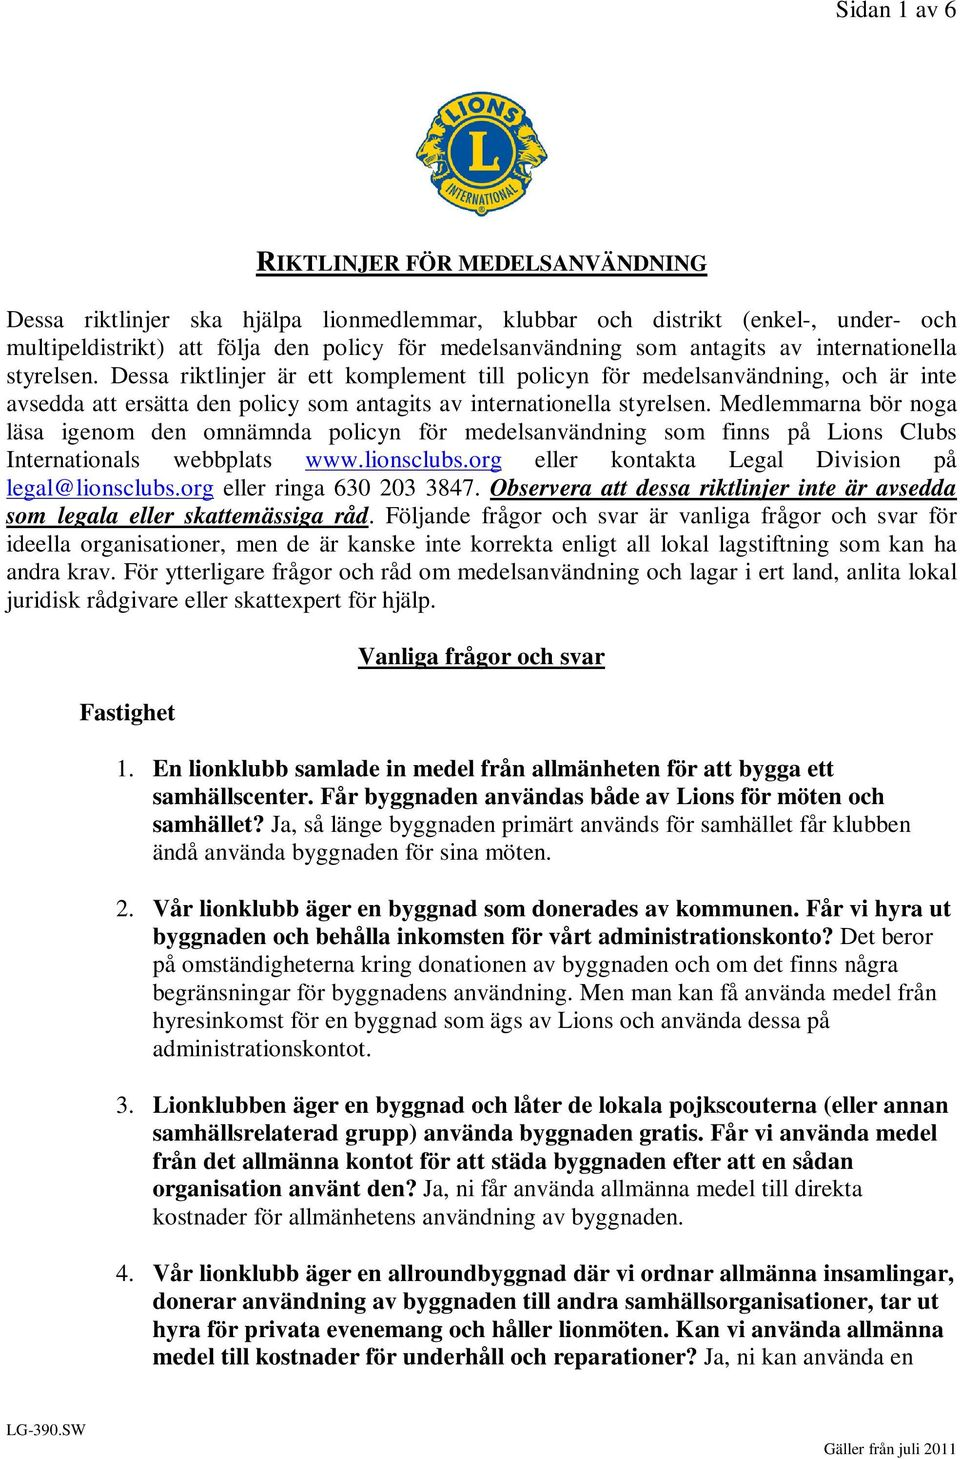 Medlemmarna bör noga läsa igenom den omnämnda policyn för medelsanvändning som finns på Lions Clubs Internationals webbplats www.lionsclubs.org eller kontakta Legal Division på legal@lionsclubs.